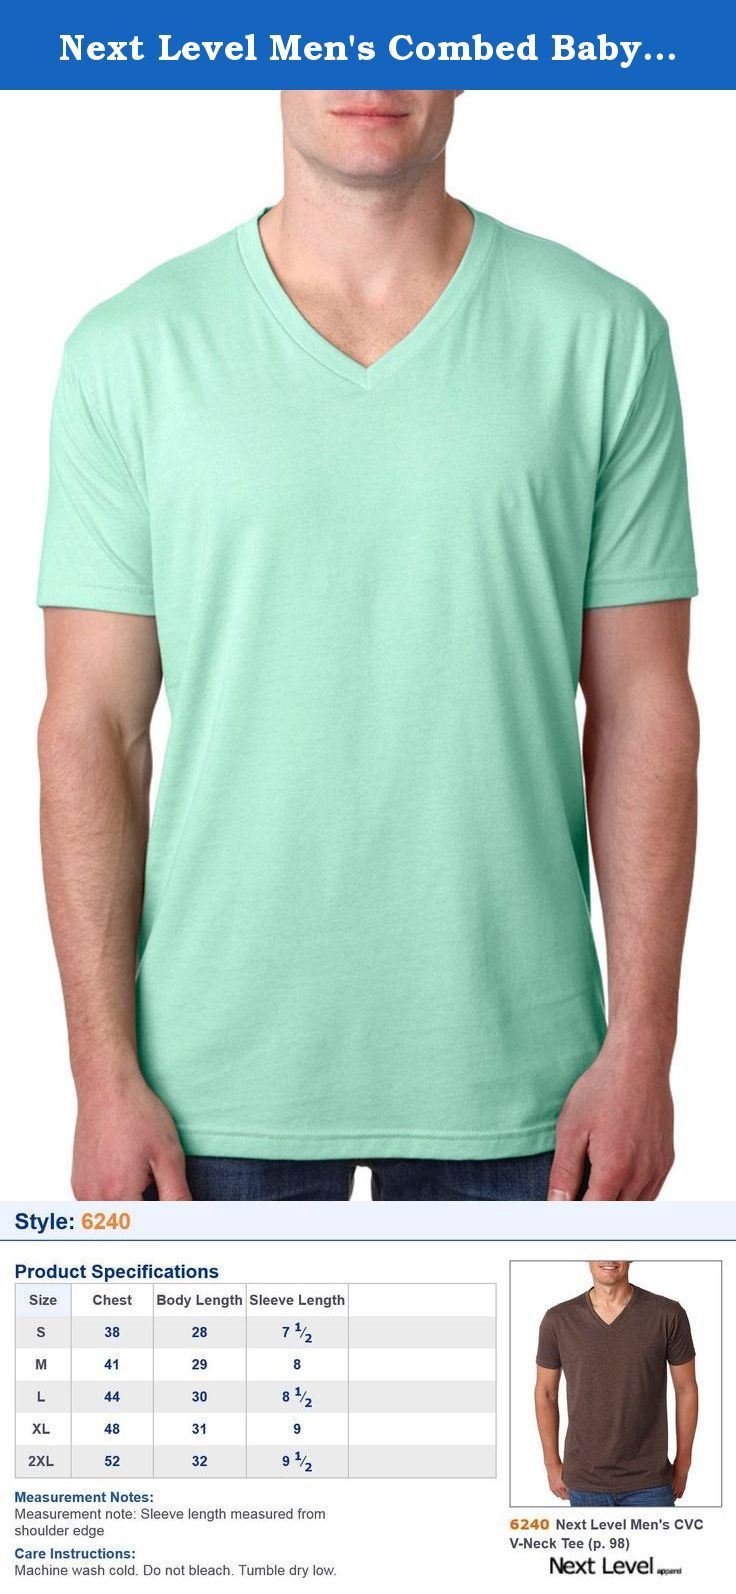 95b891b759d Next Level Men's Combed Baby Rib Knit V-Neck T-Shirt, Mint, Medium ...